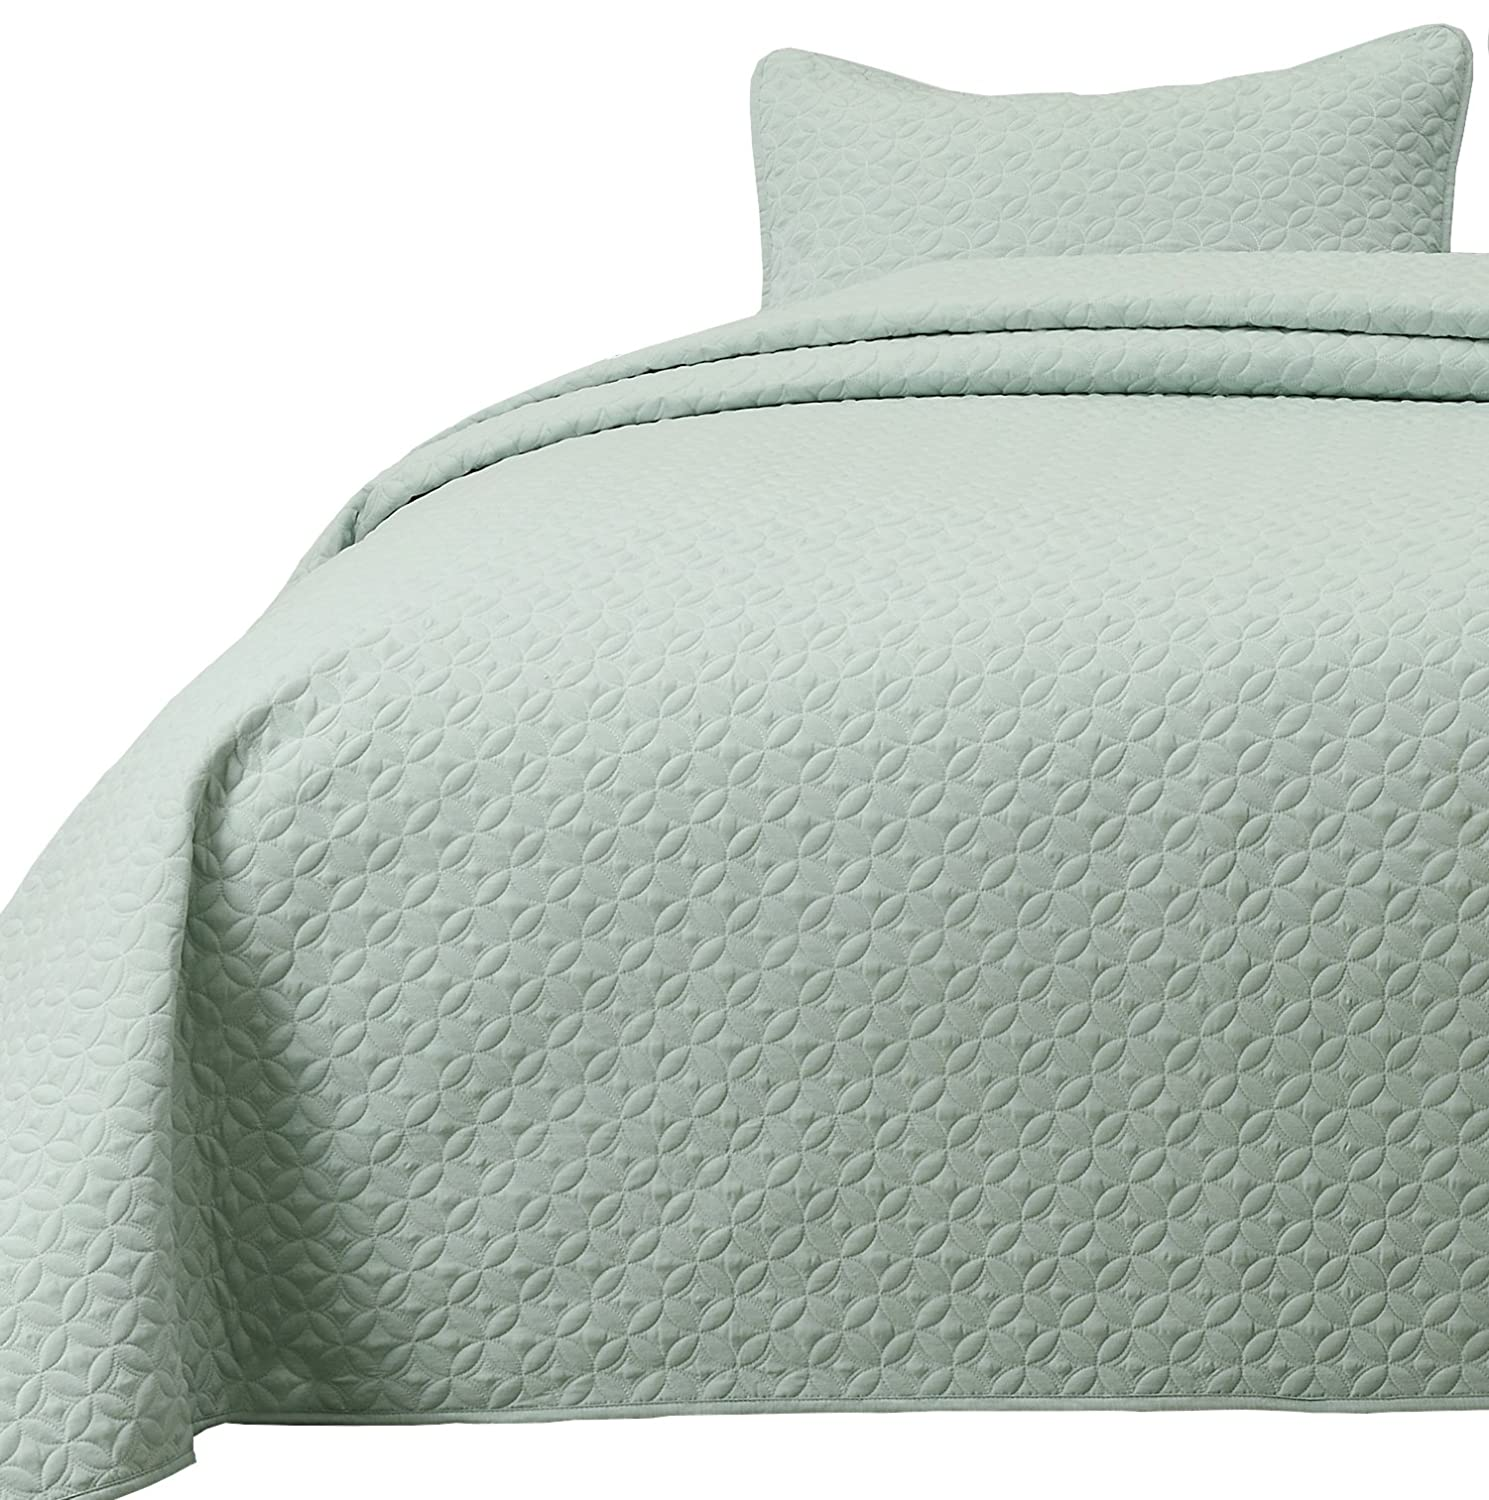 Cozy Beddings Allyson 2pc Quilted Bedspread Thin Extra Light Weight and Oversized Coverlet Twin//Twin XL Size Bed Aqua Green